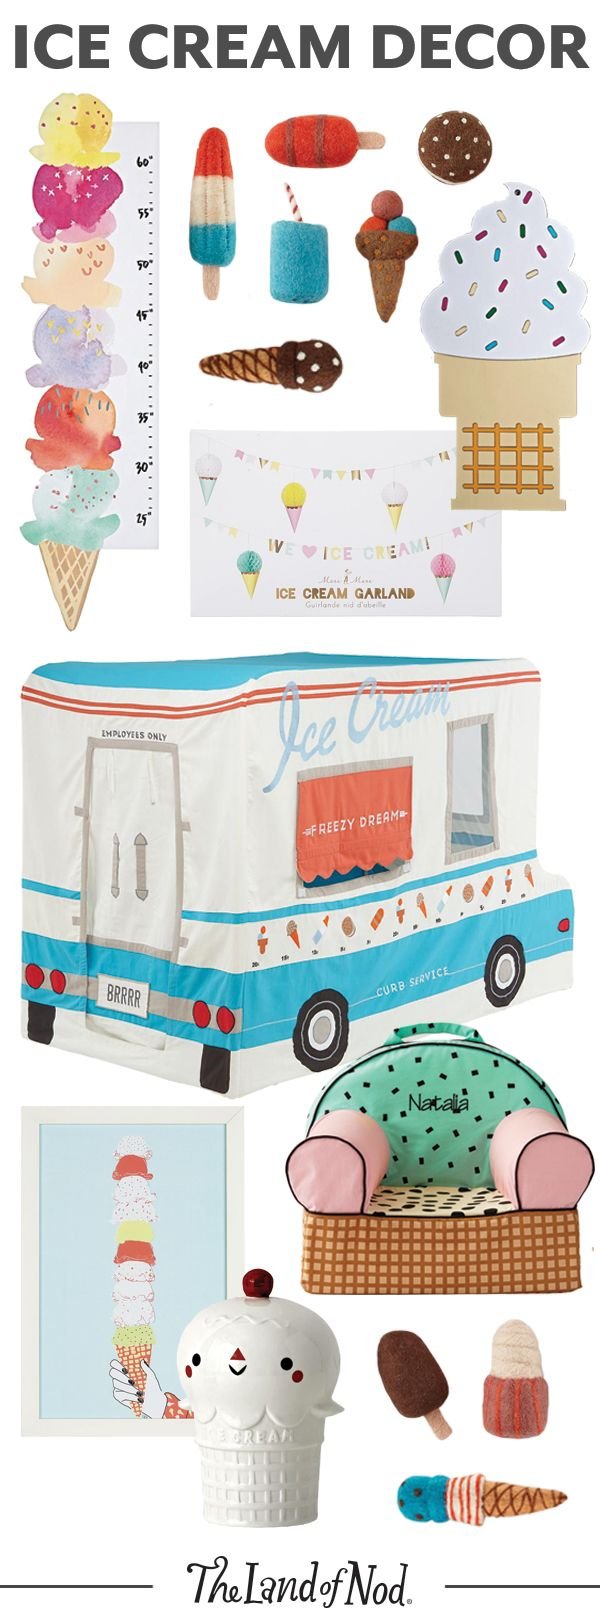 Sweet, vibrant and filled with an array of bright colors, these ice cream-themed decor will liven up your home. We have a feeling any kid will love the wall art, growth chart, playhouse and toys.